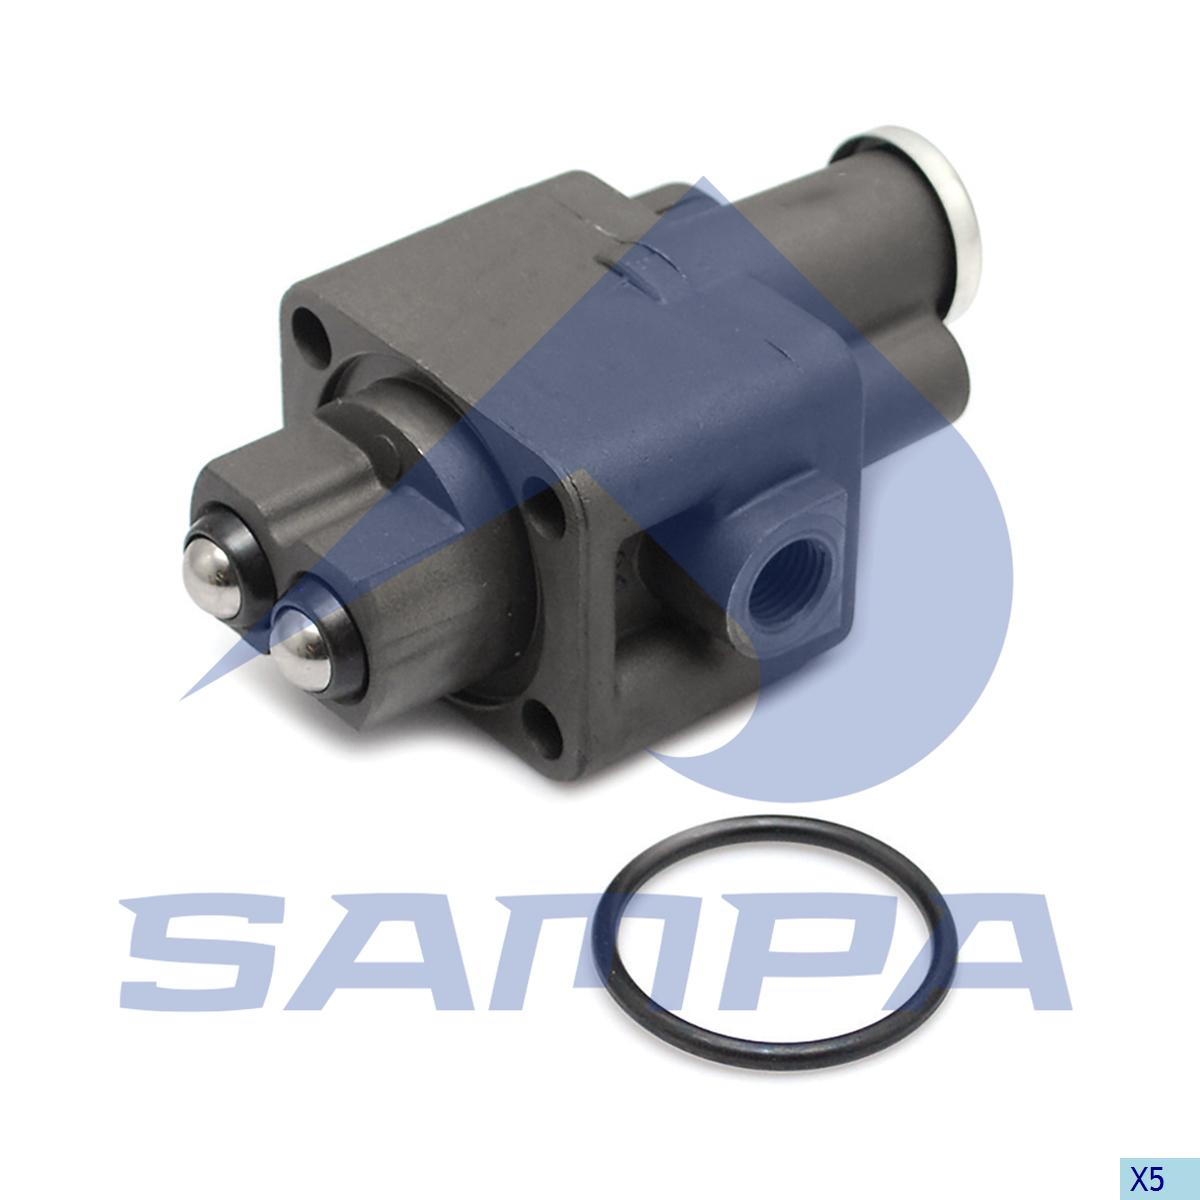 Valve, Gear Box Housing, Iveco, Gear Box